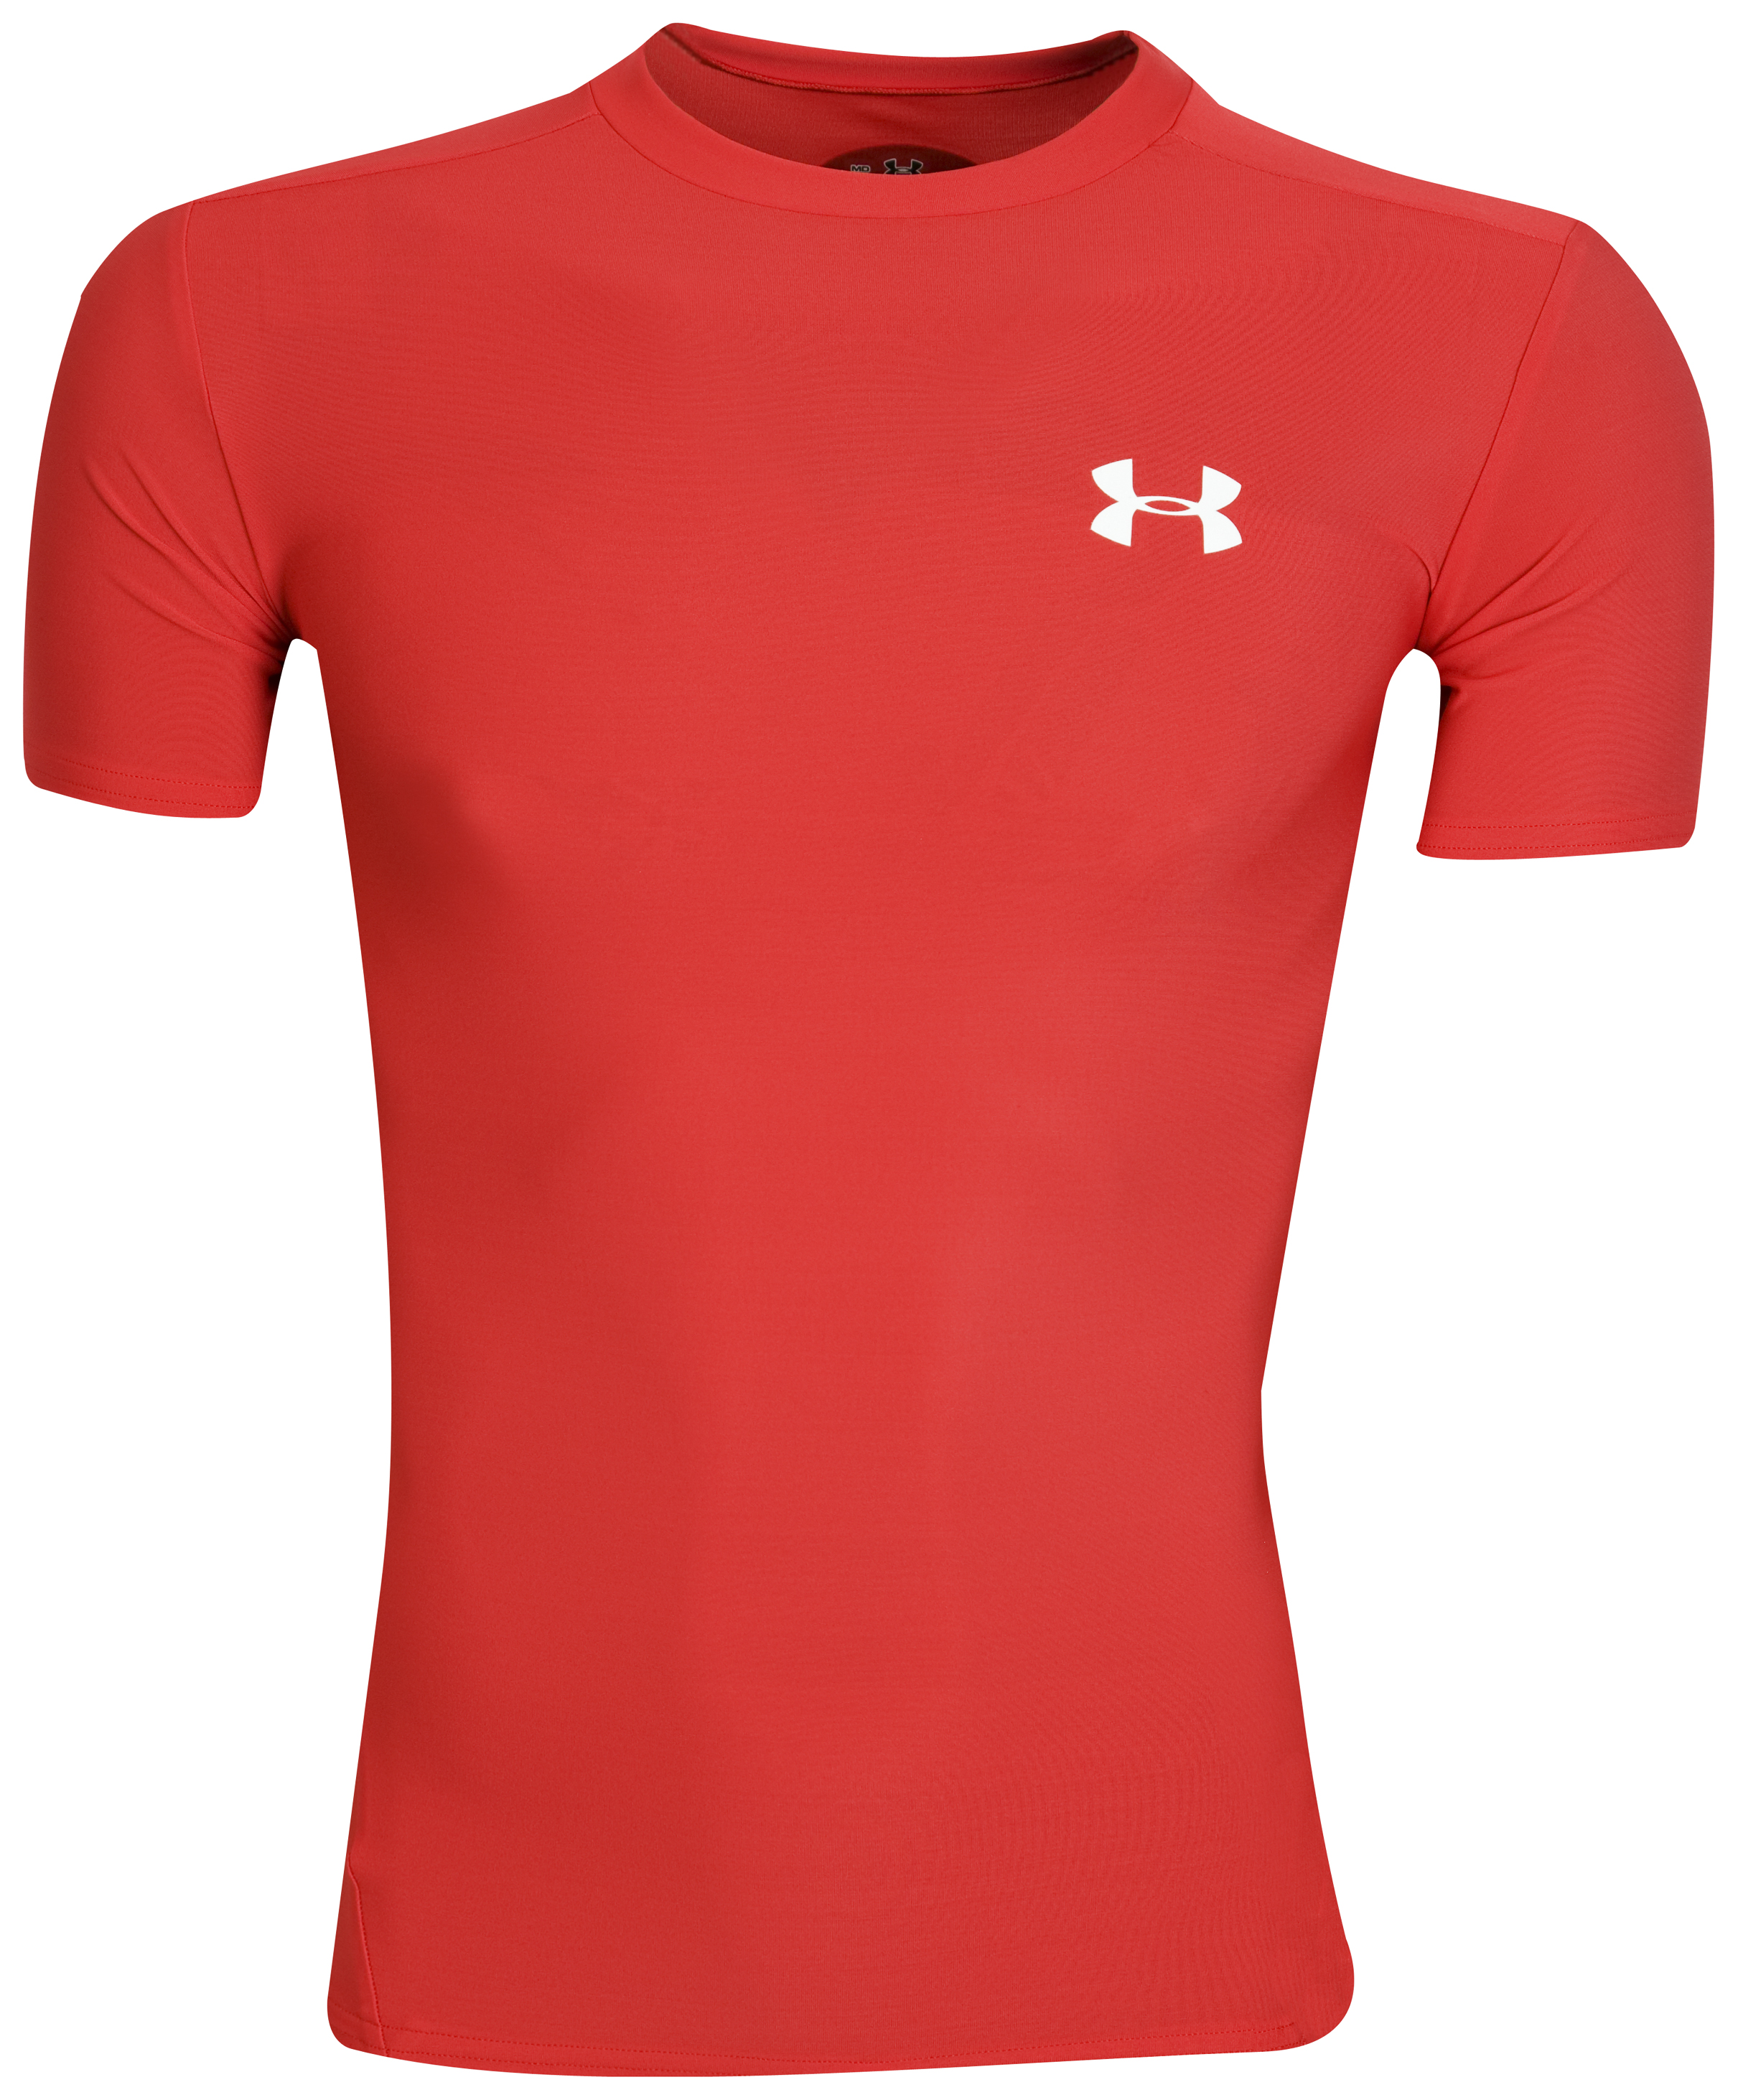 UnderArmour HeatGear Compression Top - Red/White